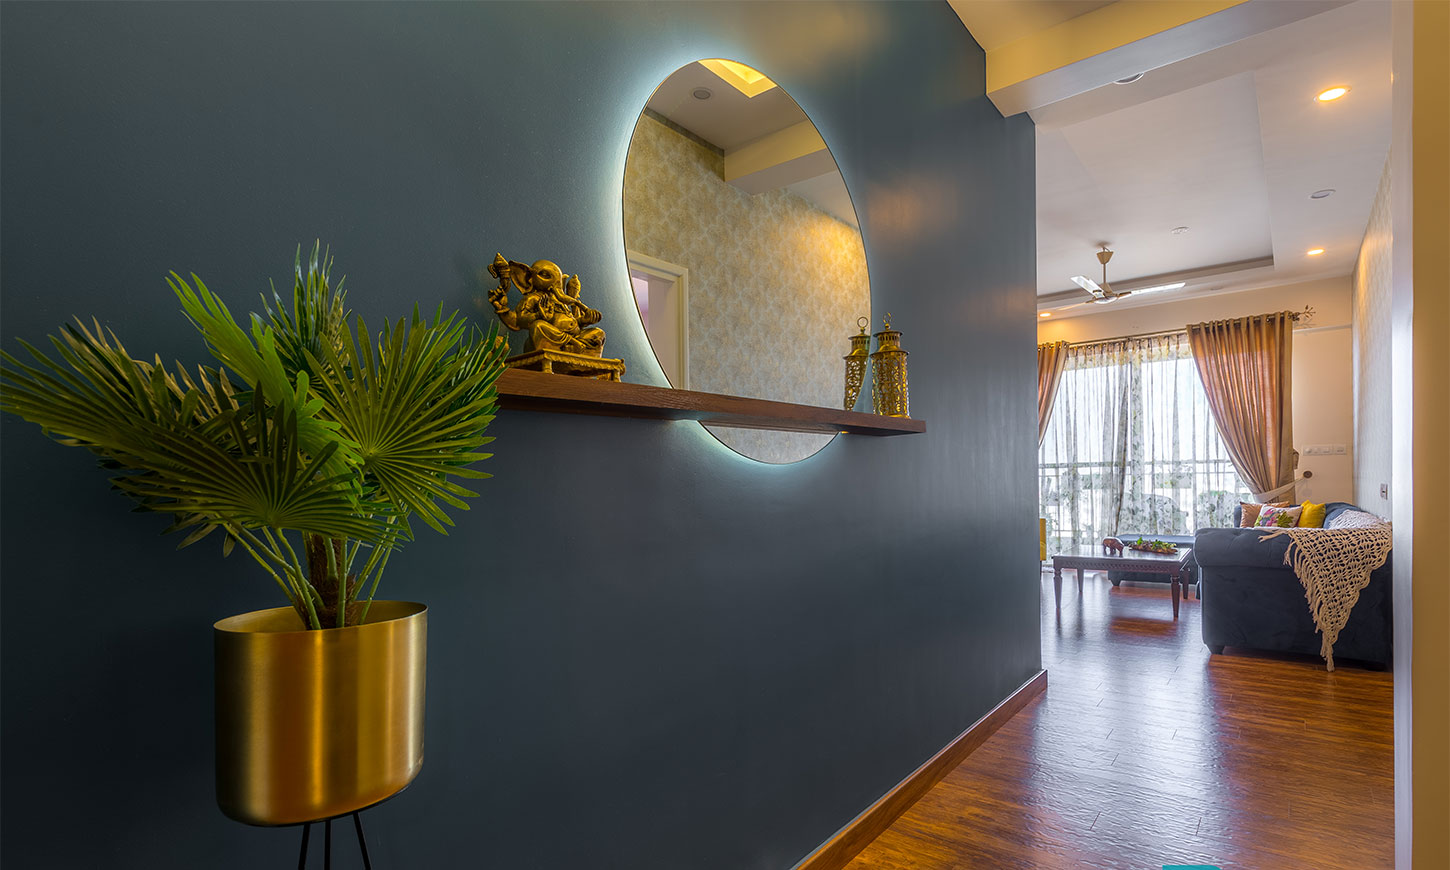 Top interiors in bangalore designed by design cafe for hall entrance